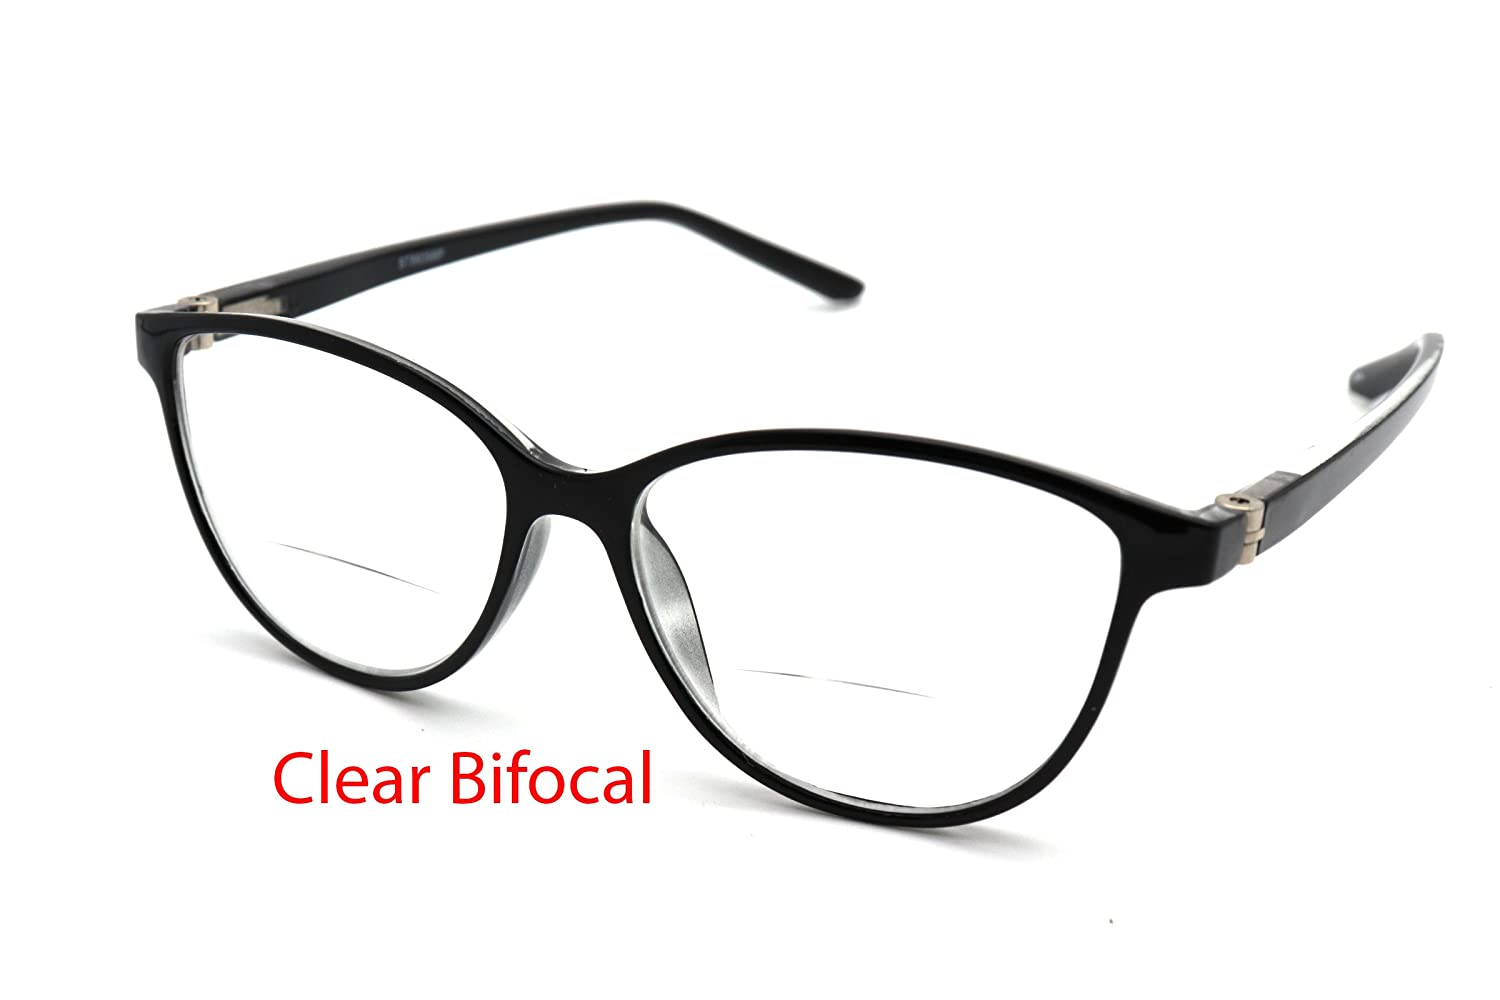 2e9effb9868e Amazon.com  ColorViper Vintage Classic cateye reading glasses for women  clear BiFocal CAT EYE (A1 shiny black clear Bifocus lens